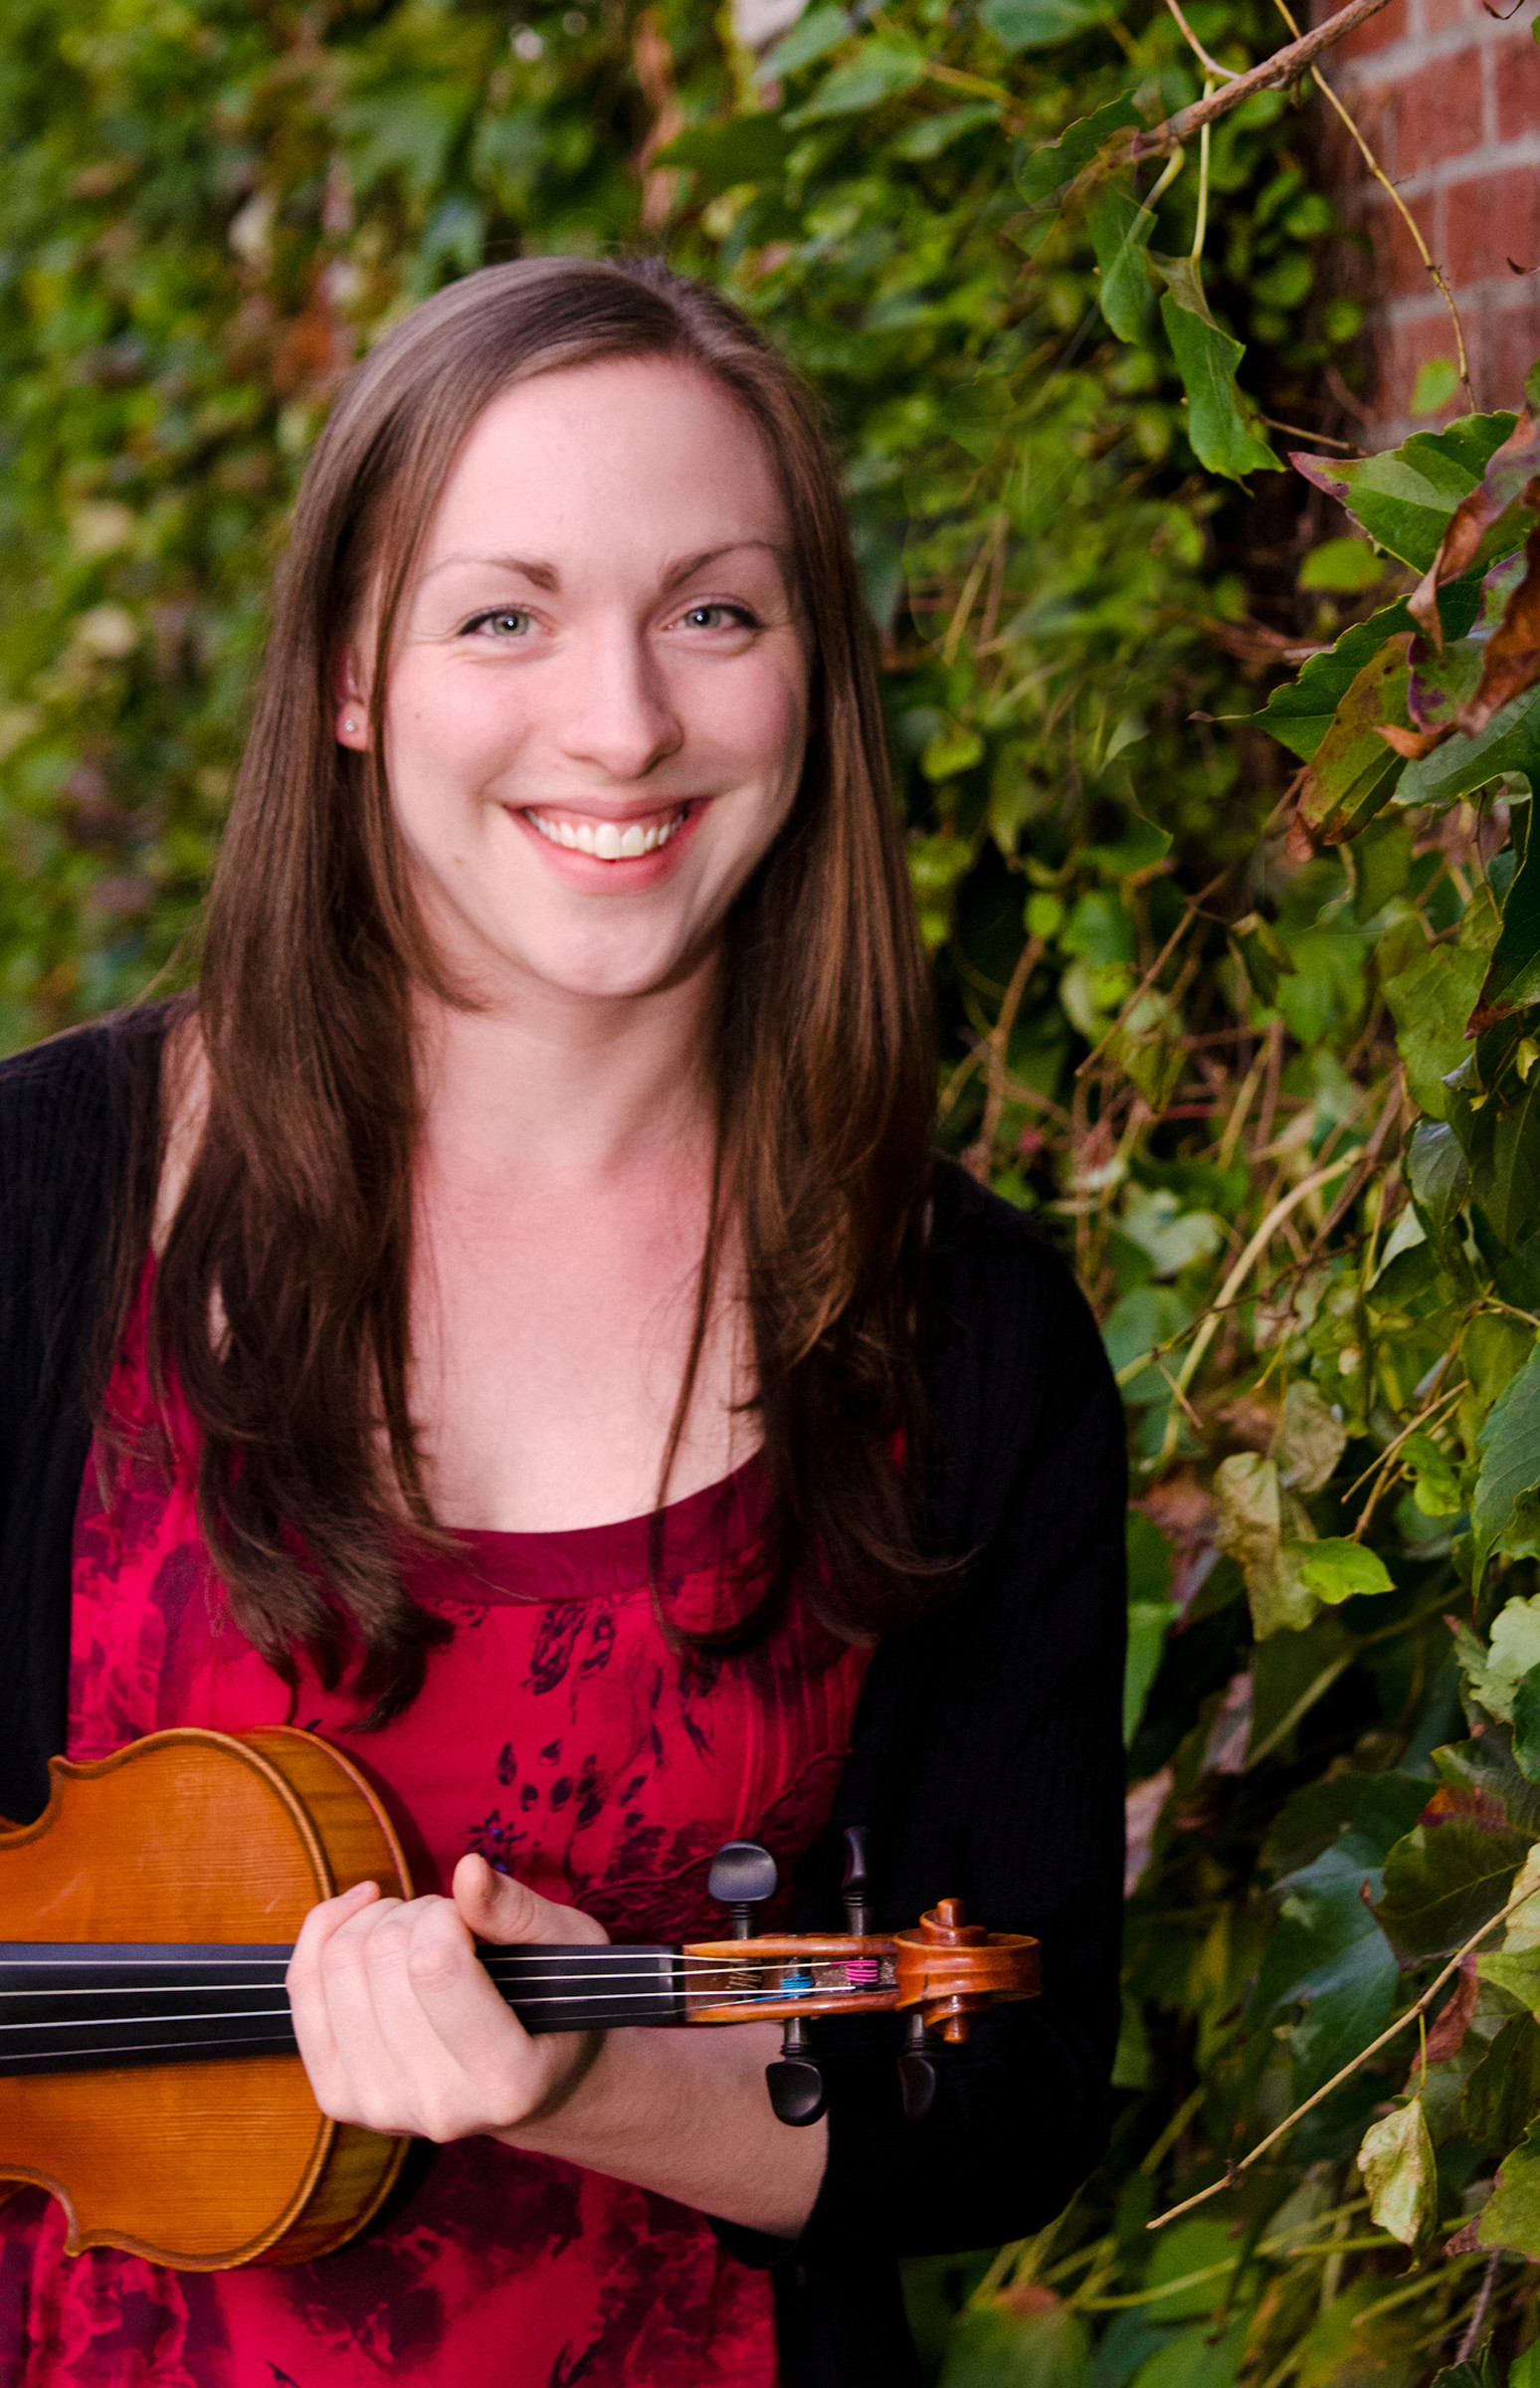 Julie Metcalf plays fiddle at at the Rehoboth contra dance on Friday, September 22